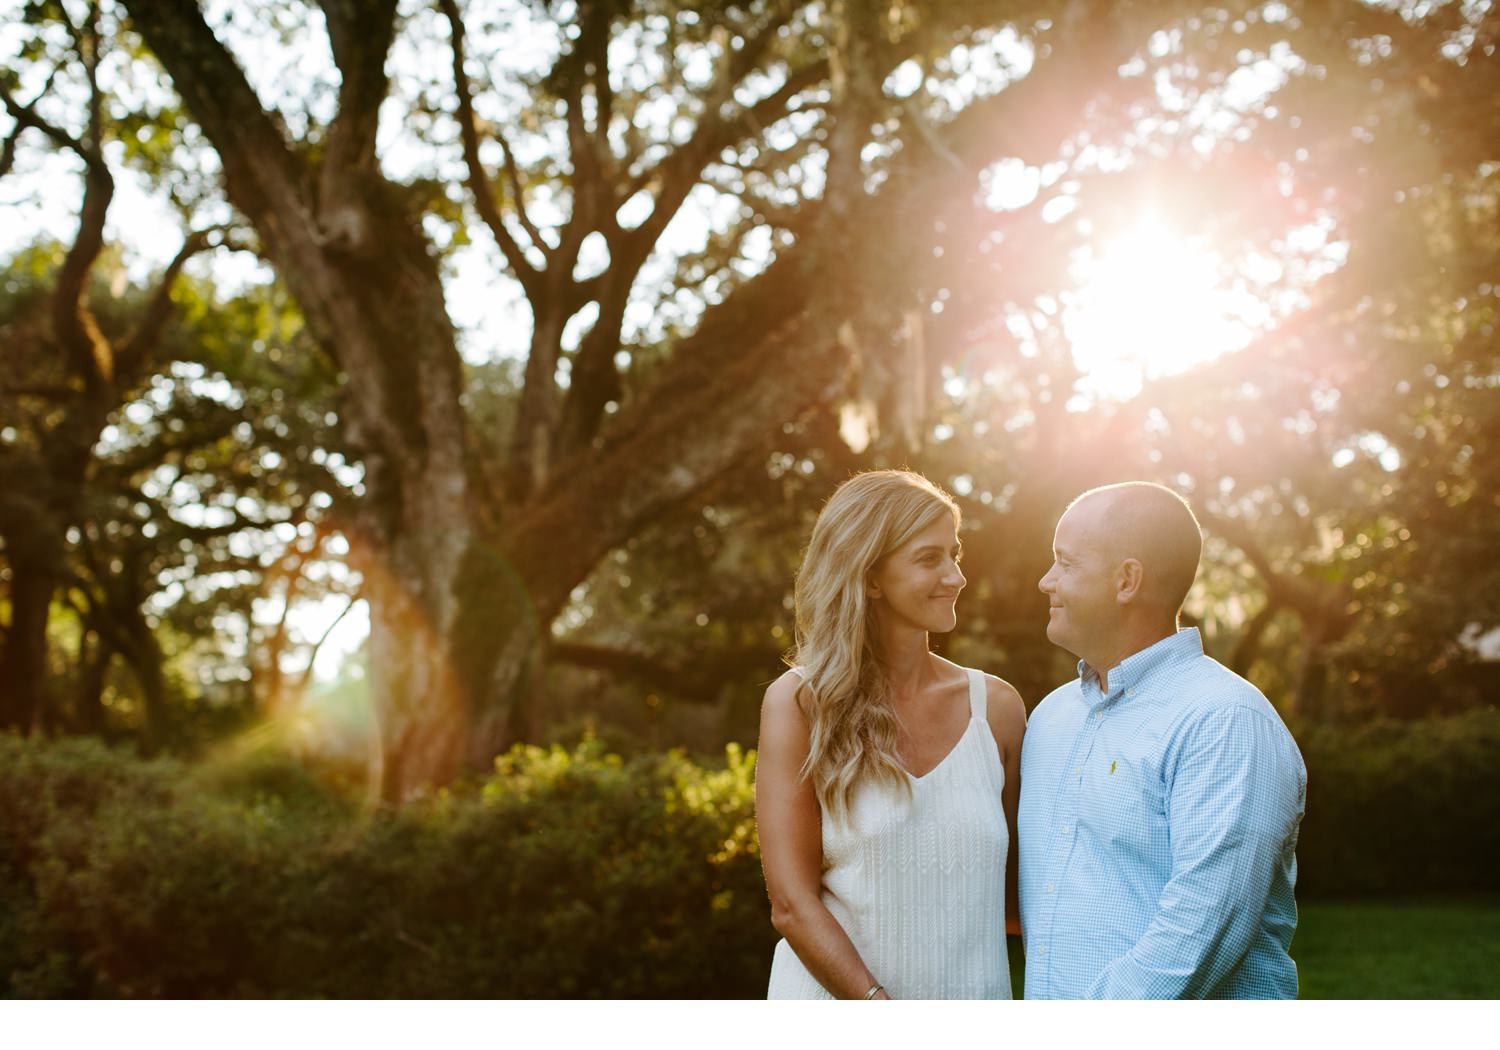 eden-gardens-state-park-engagement-session-stacie-and-jacob-3.jpg